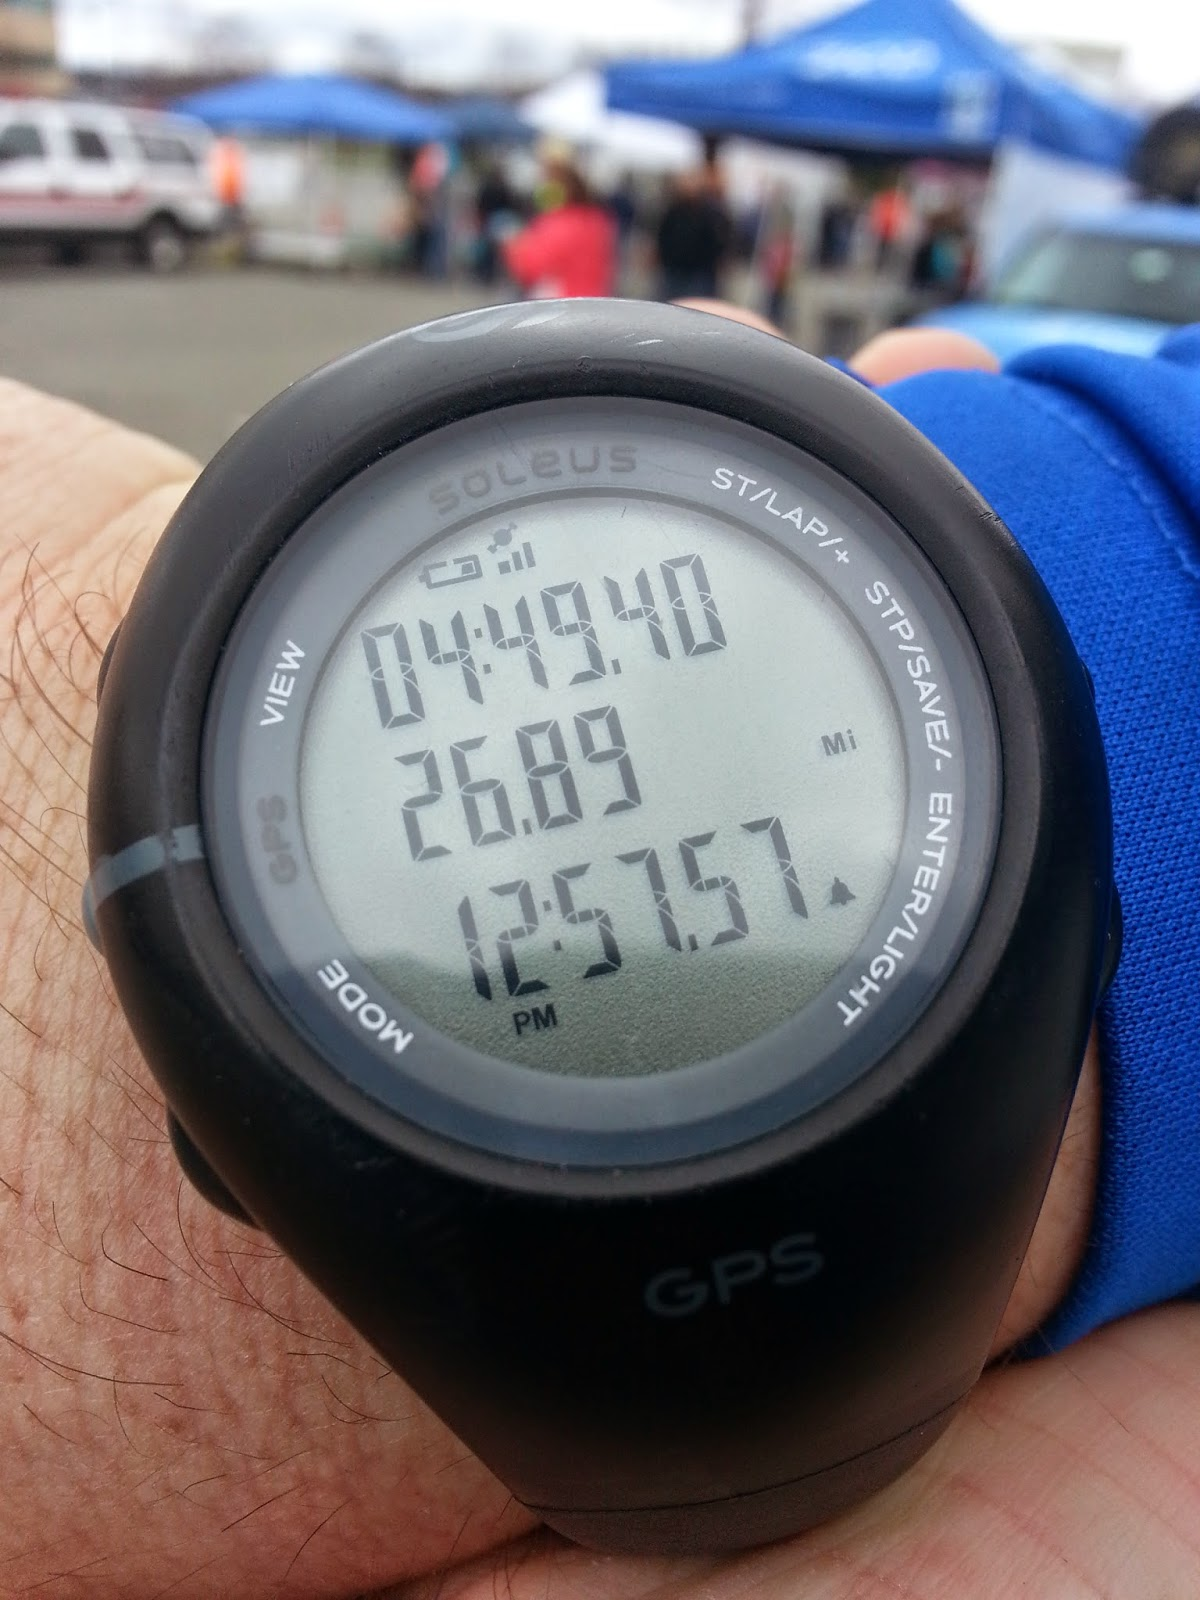 Watch Reading - Earth Rock Run 2014:  4 hours, 49 minutes 40 seconds